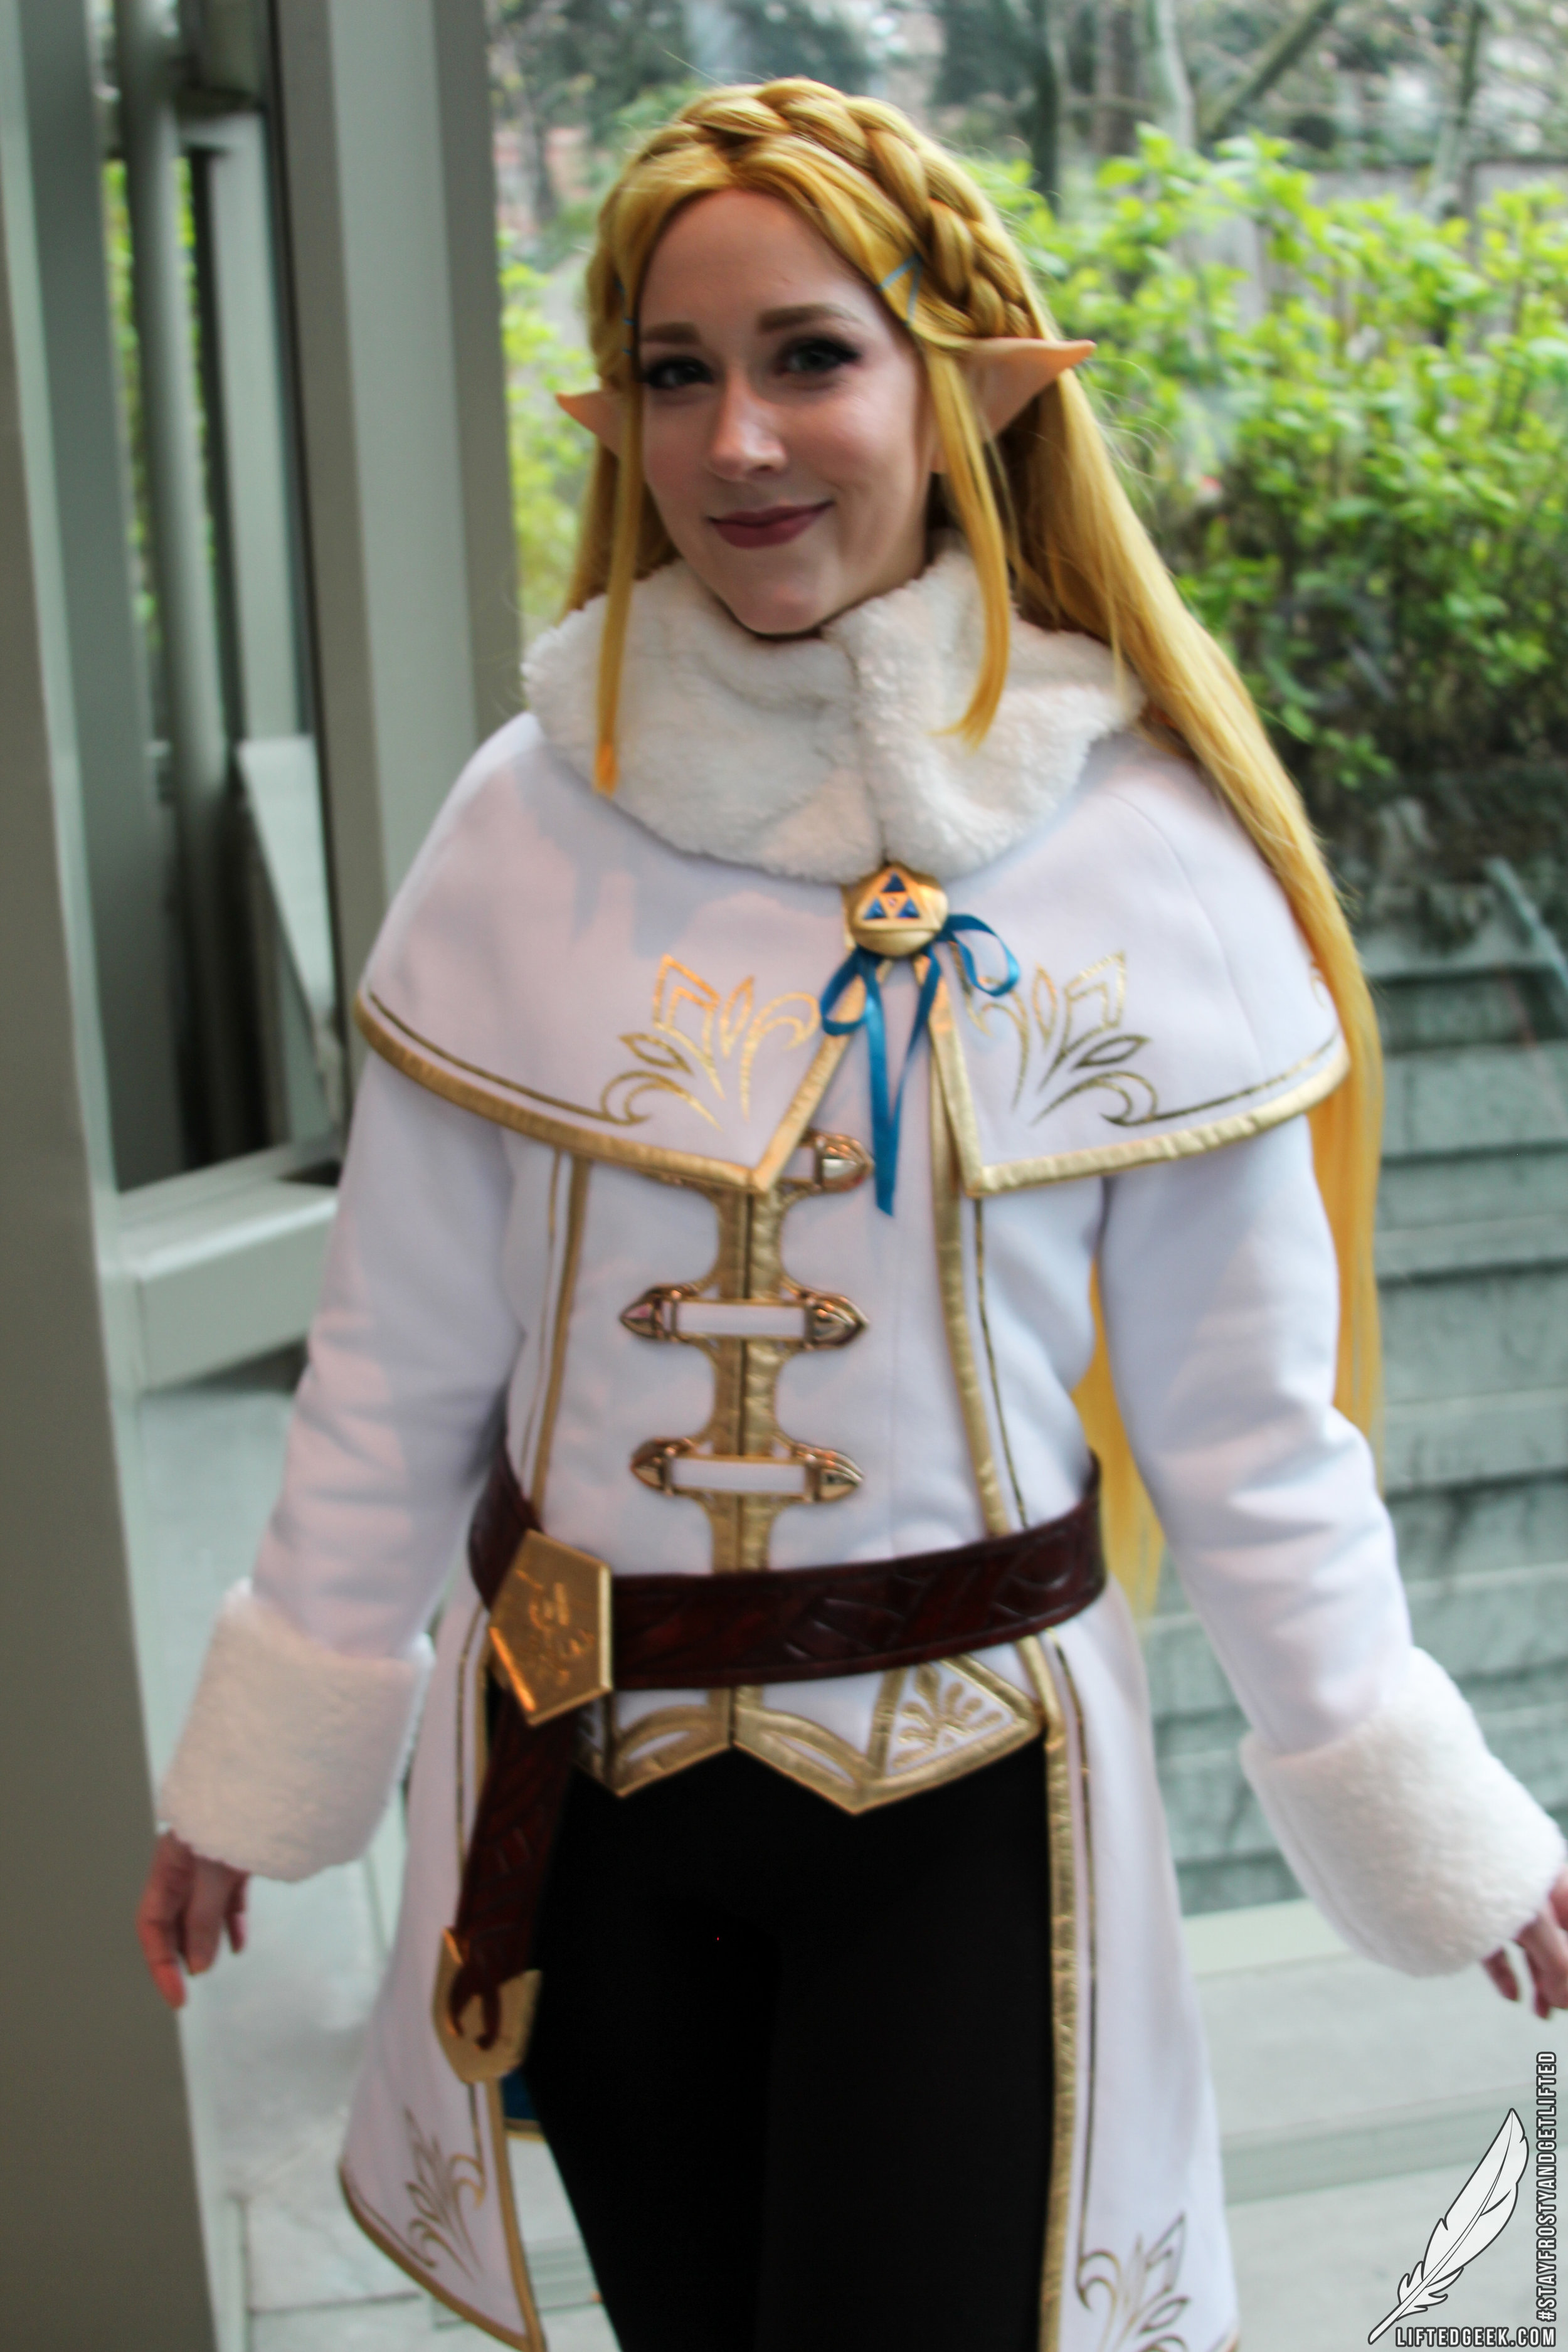 Sakuracon-cosplay-79.jpg